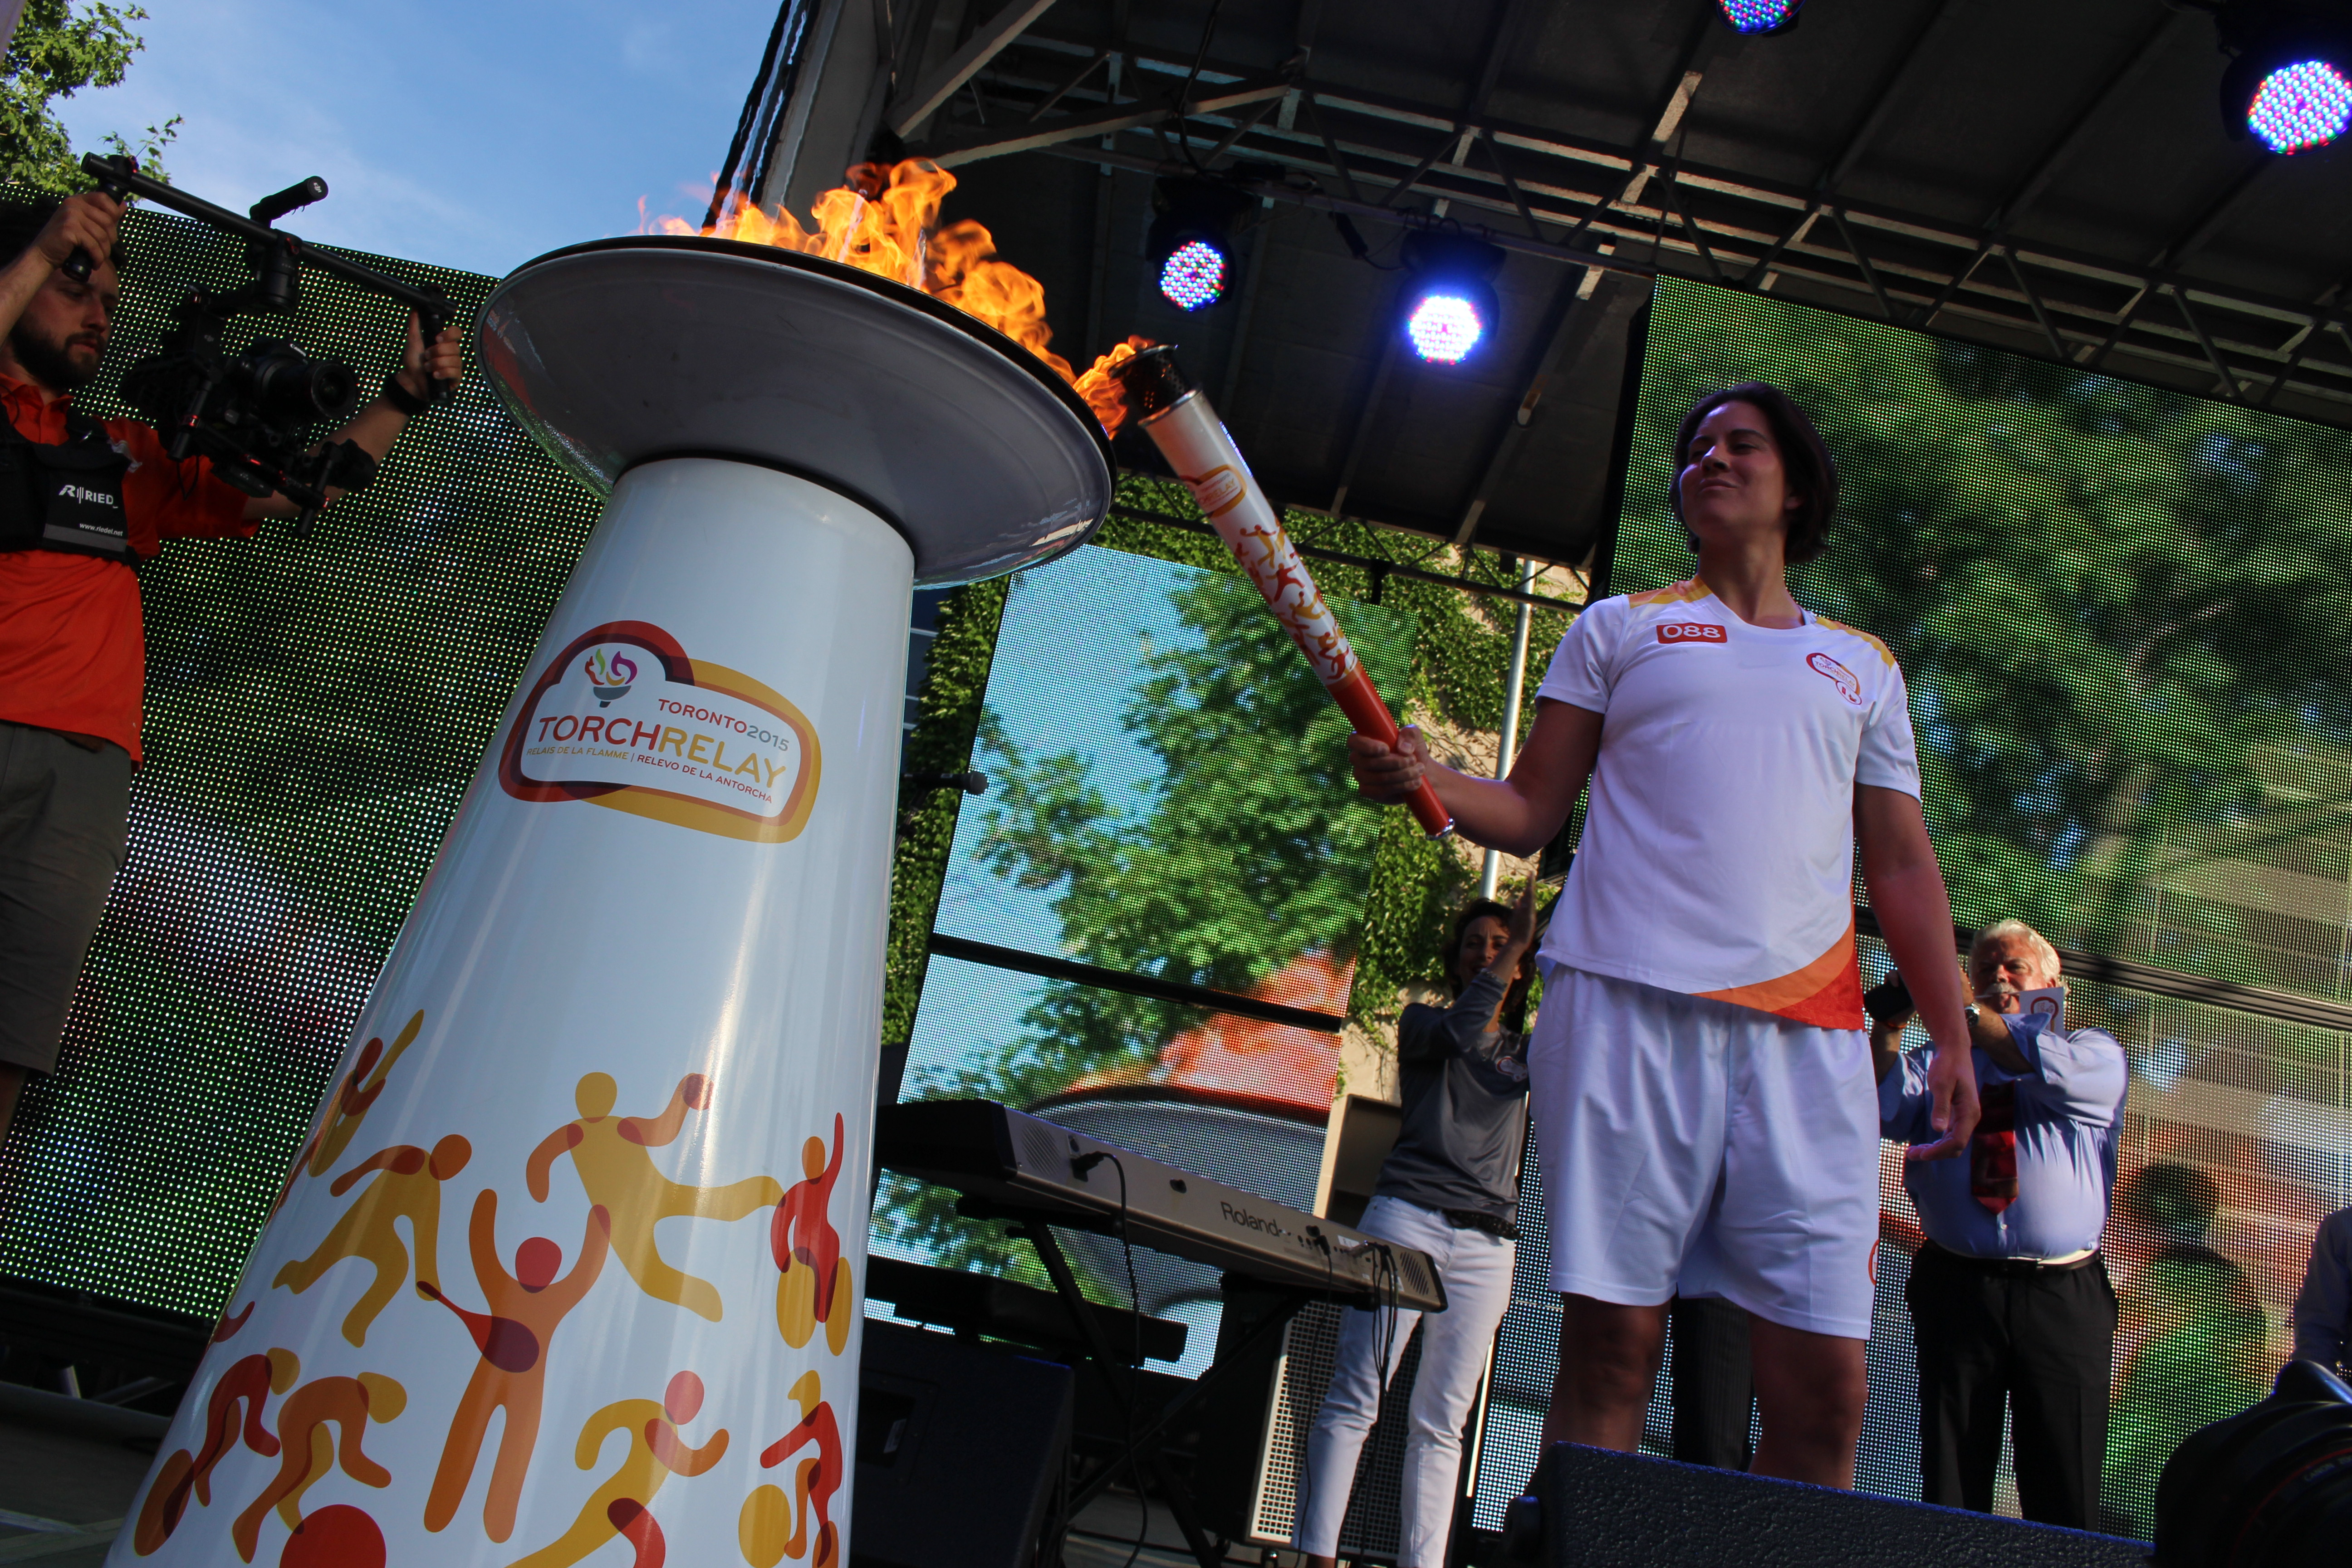 Olympic boxer Mary Spencer carries the flame during the Pan Am Torch Relay in Windsor, June 16, 2015. (Photo by Jason Viau)